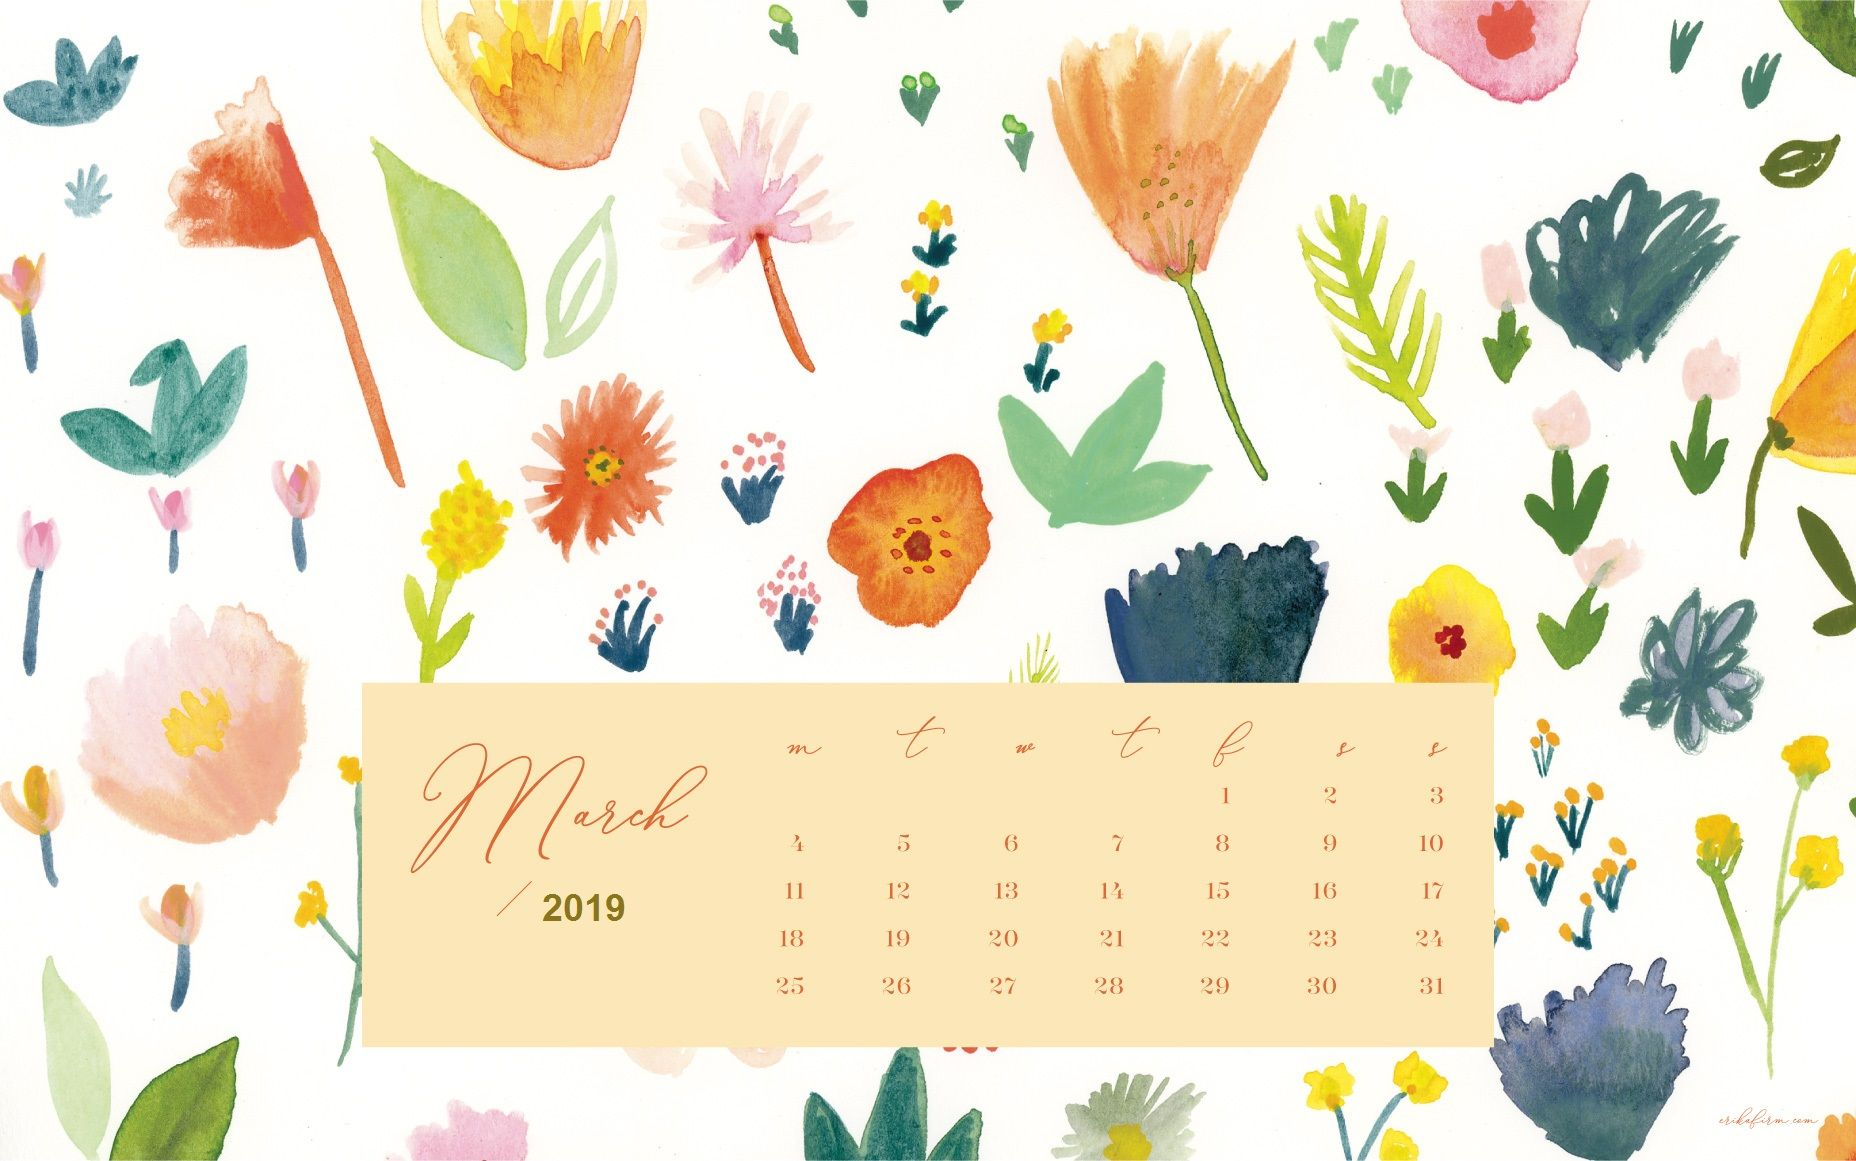 March 2019 Calendar Wallpaper Floral Background Screensaver